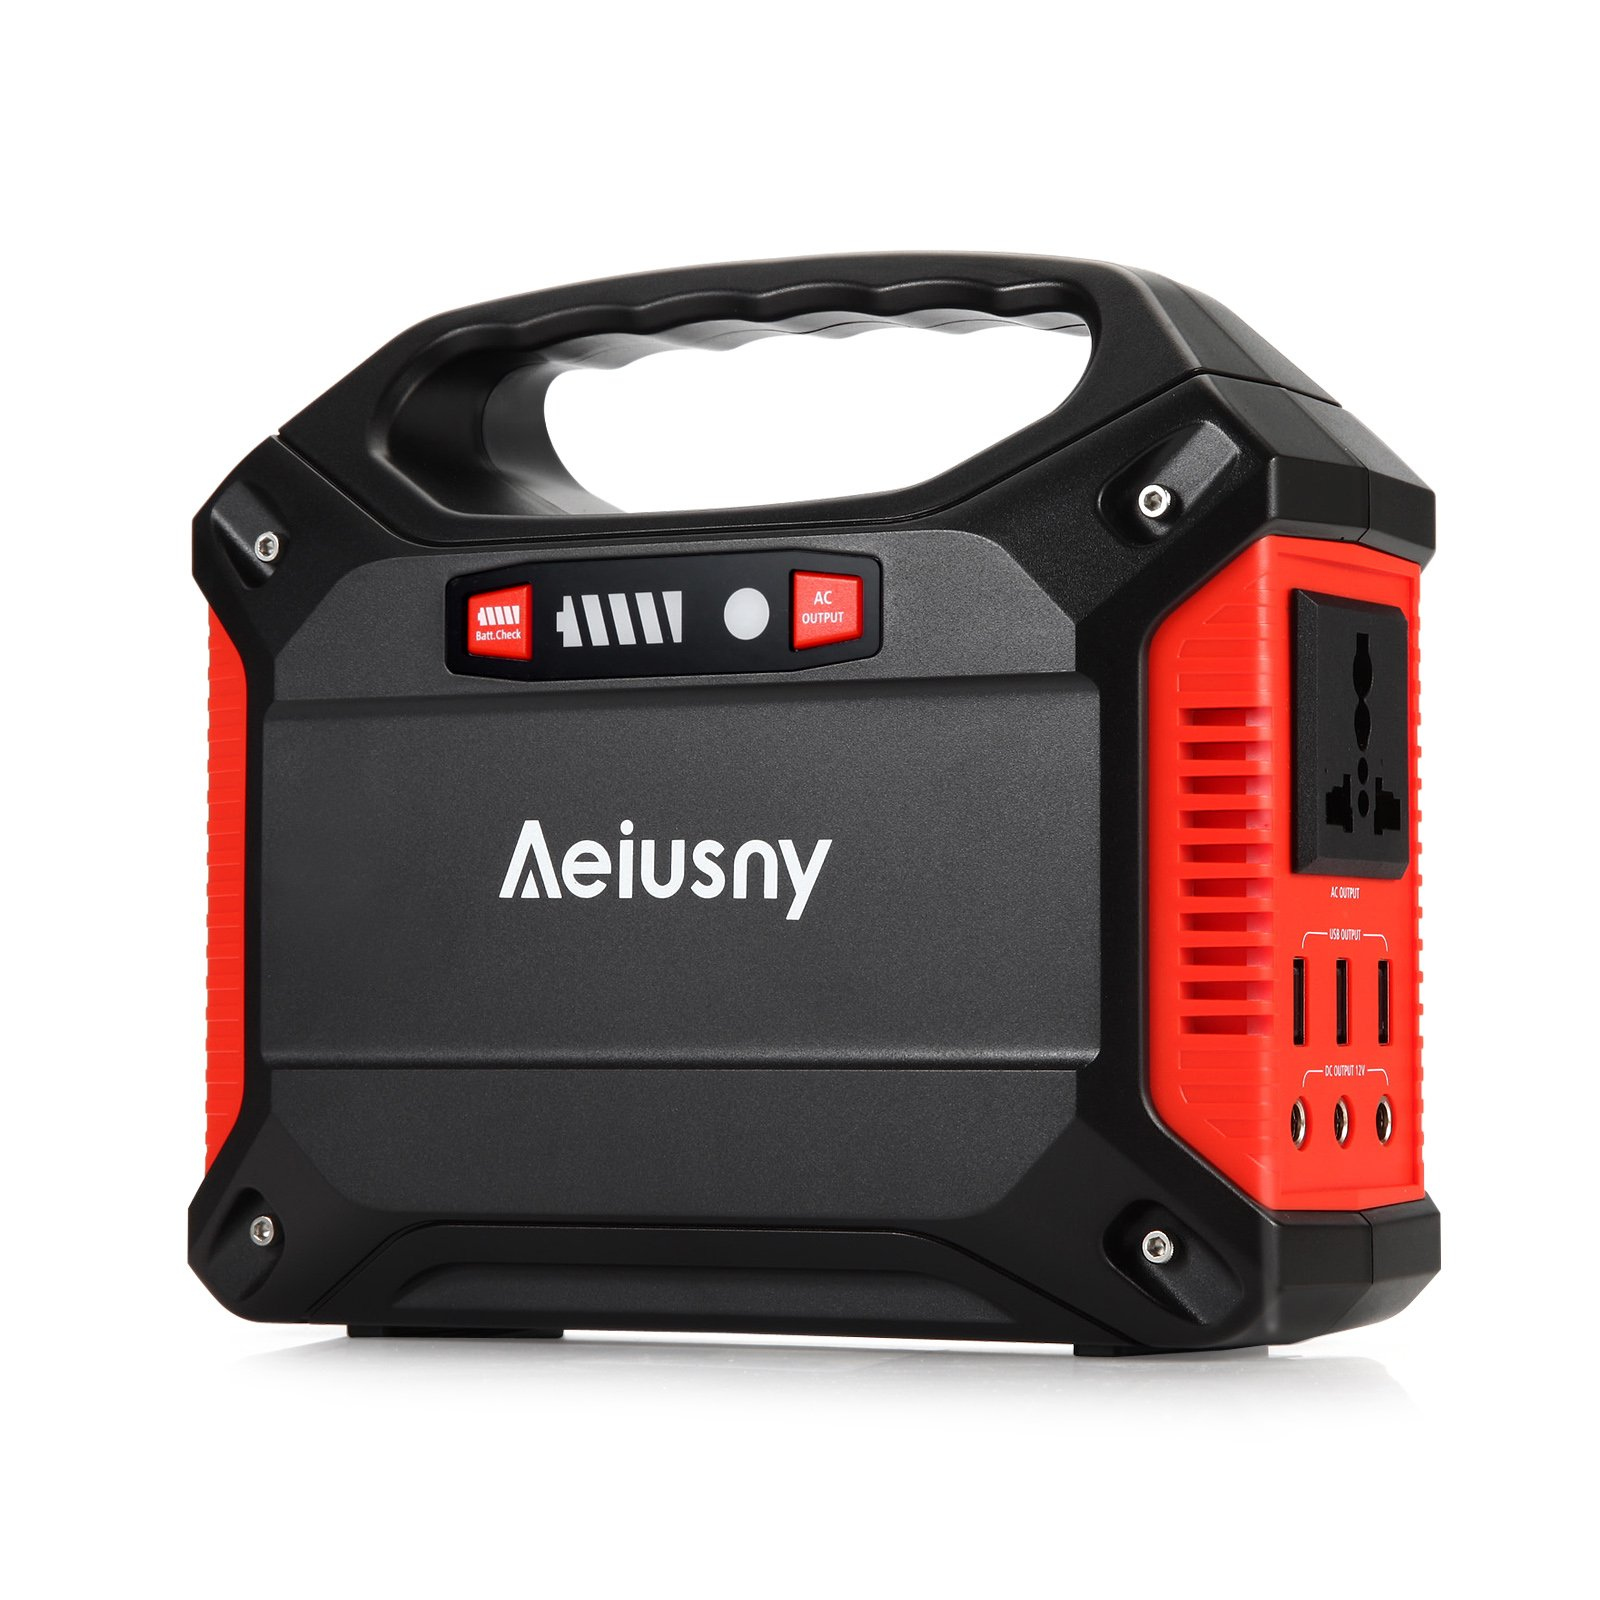 Aeiusny Portable Generator 155Wh Power Inverter Battery Camping CPAP Emergency Home Use UPS Solar Charger Charged by Solar Panel/ Wall Outlet/Car with 110V AC Outlet,3DC 12V,3USB Ports by Aeiusny (Image #1)